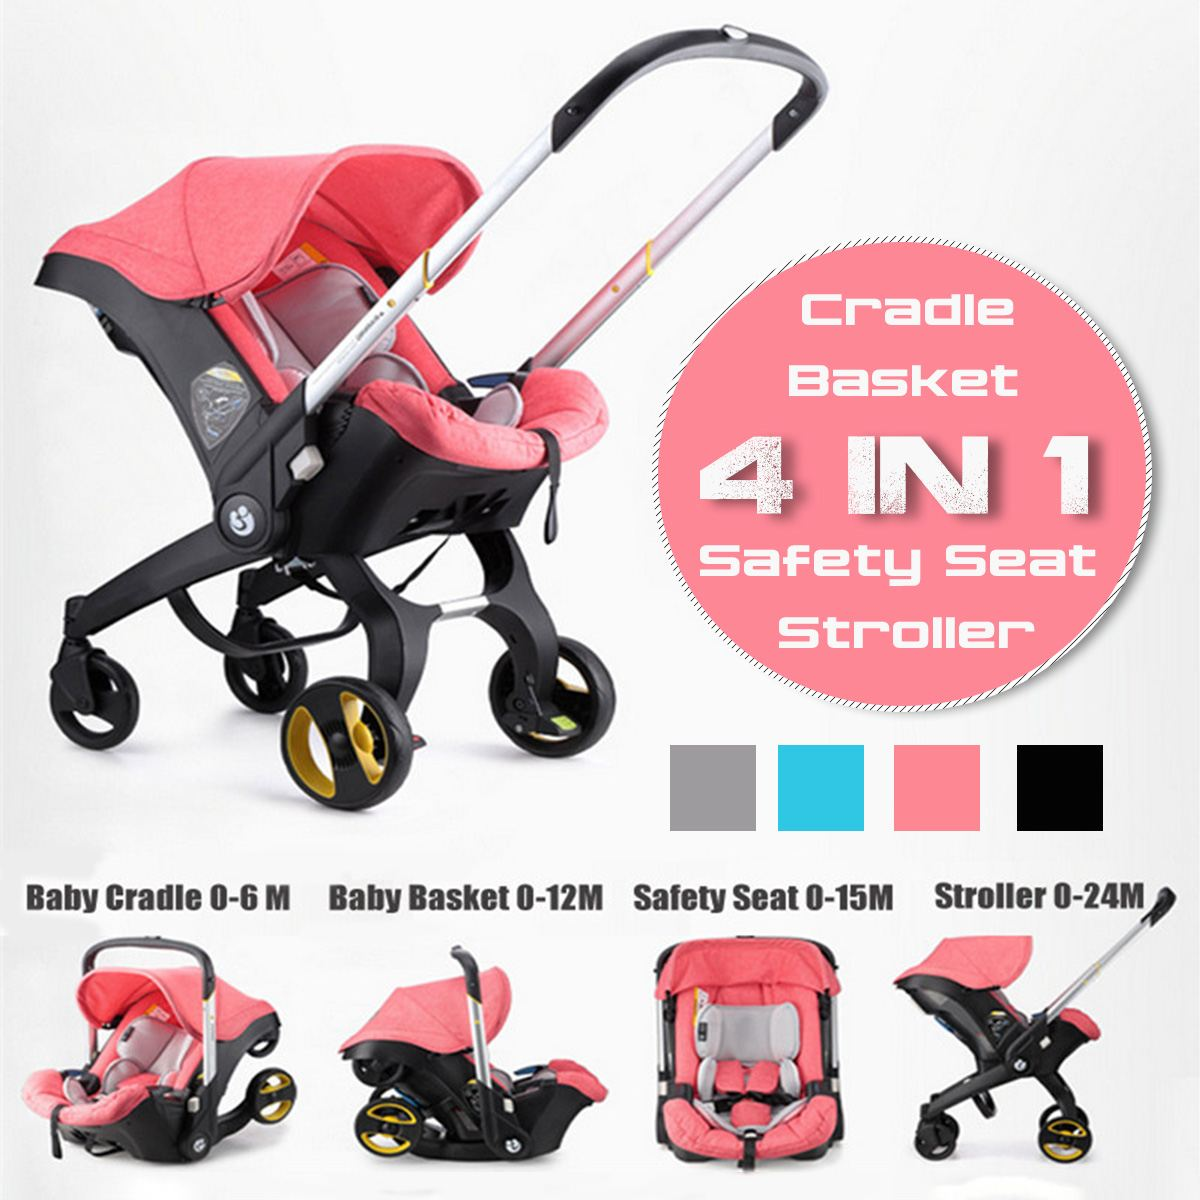 4 IN 1 Car Seat Stroller Baby Carriage Basket Portable Travel System Stroller with Safety Seat for 0-3 Years baby